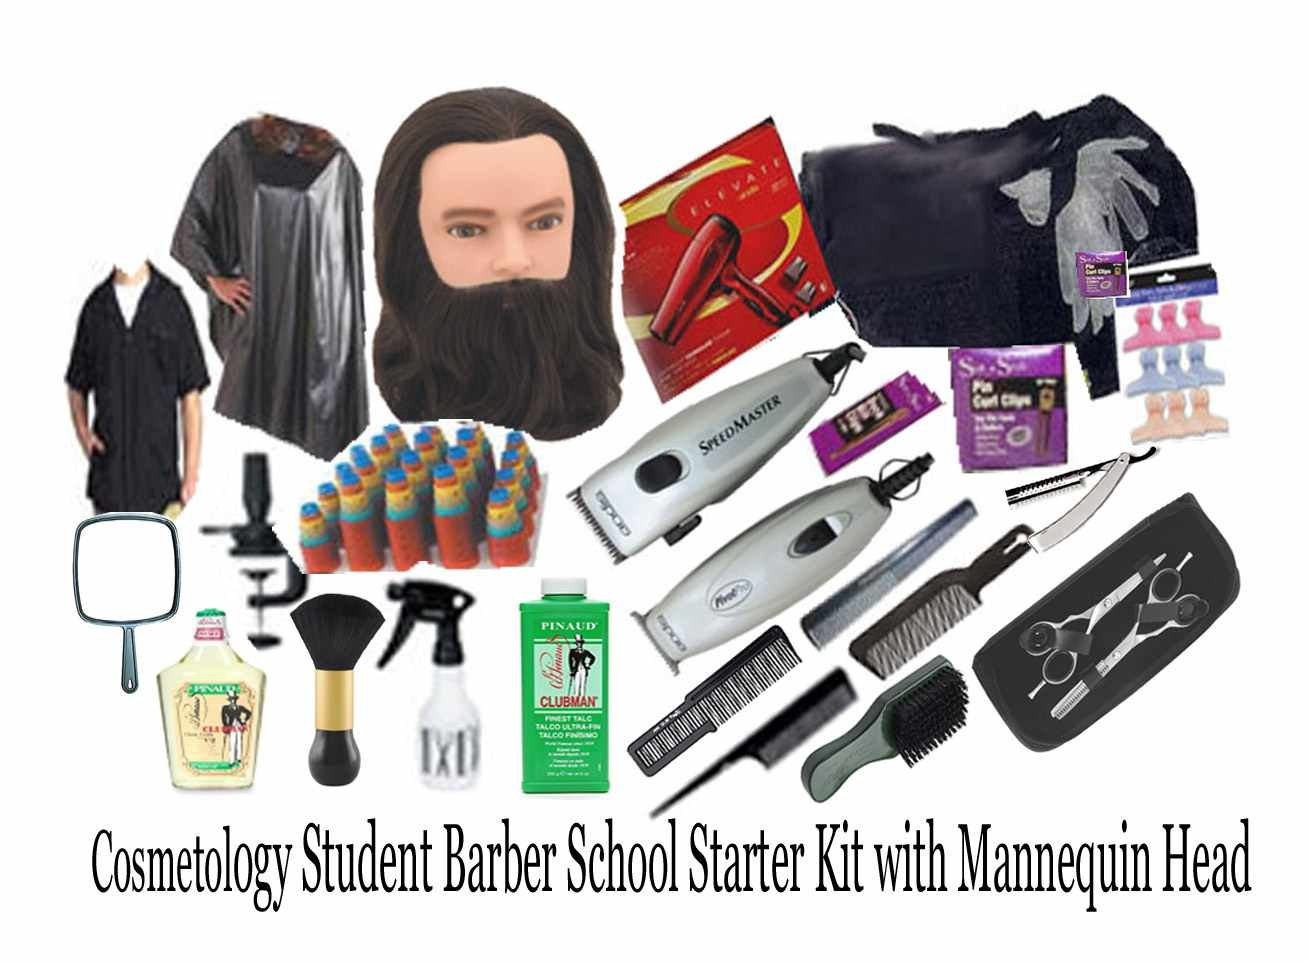 Cosmetology Student Barber School Starter Kit w/ Mannequin Head